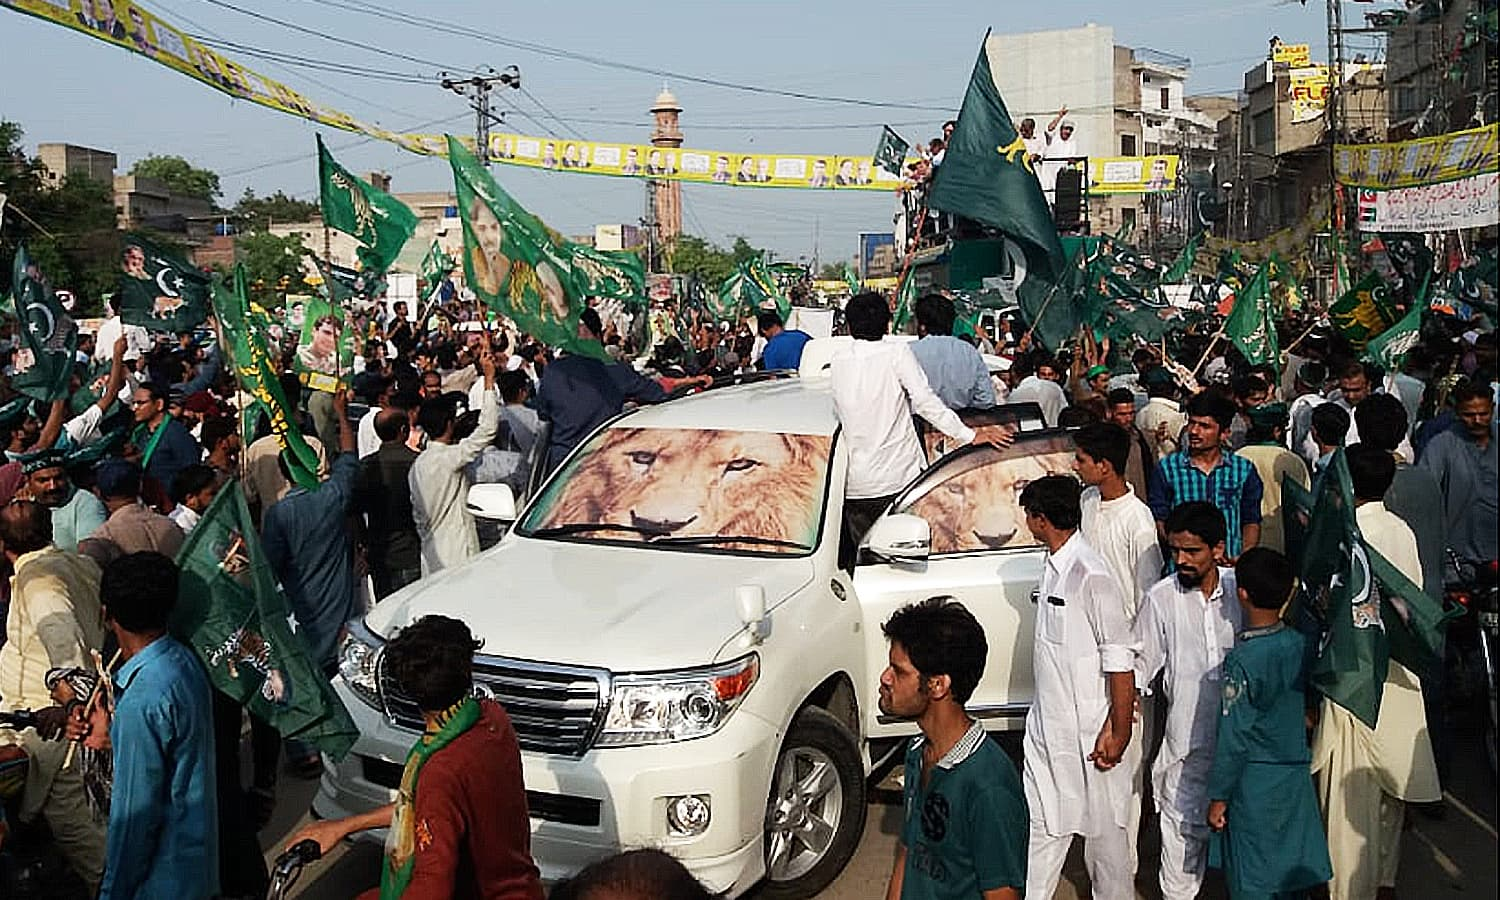 PML-N supporters rally in Lahore. ─ Photo courtesy Sarah Eleazar